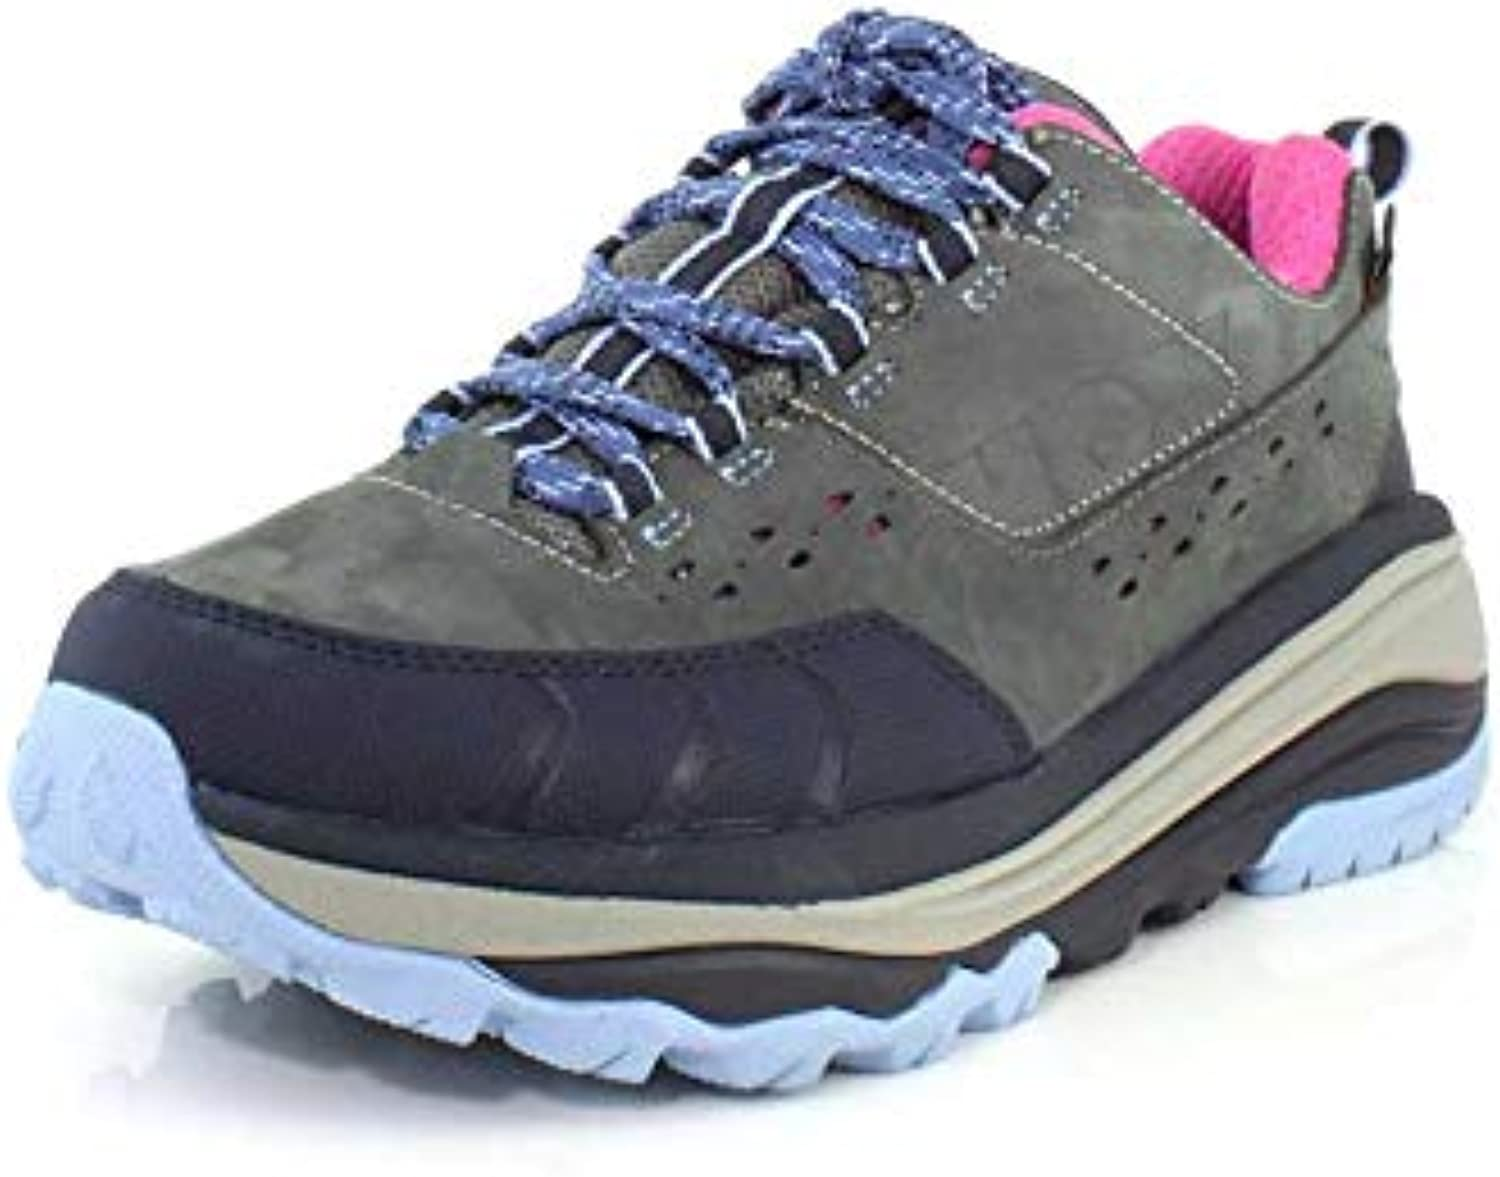 Chaussures Tor WP Summit WP Tor - femme 3a3518